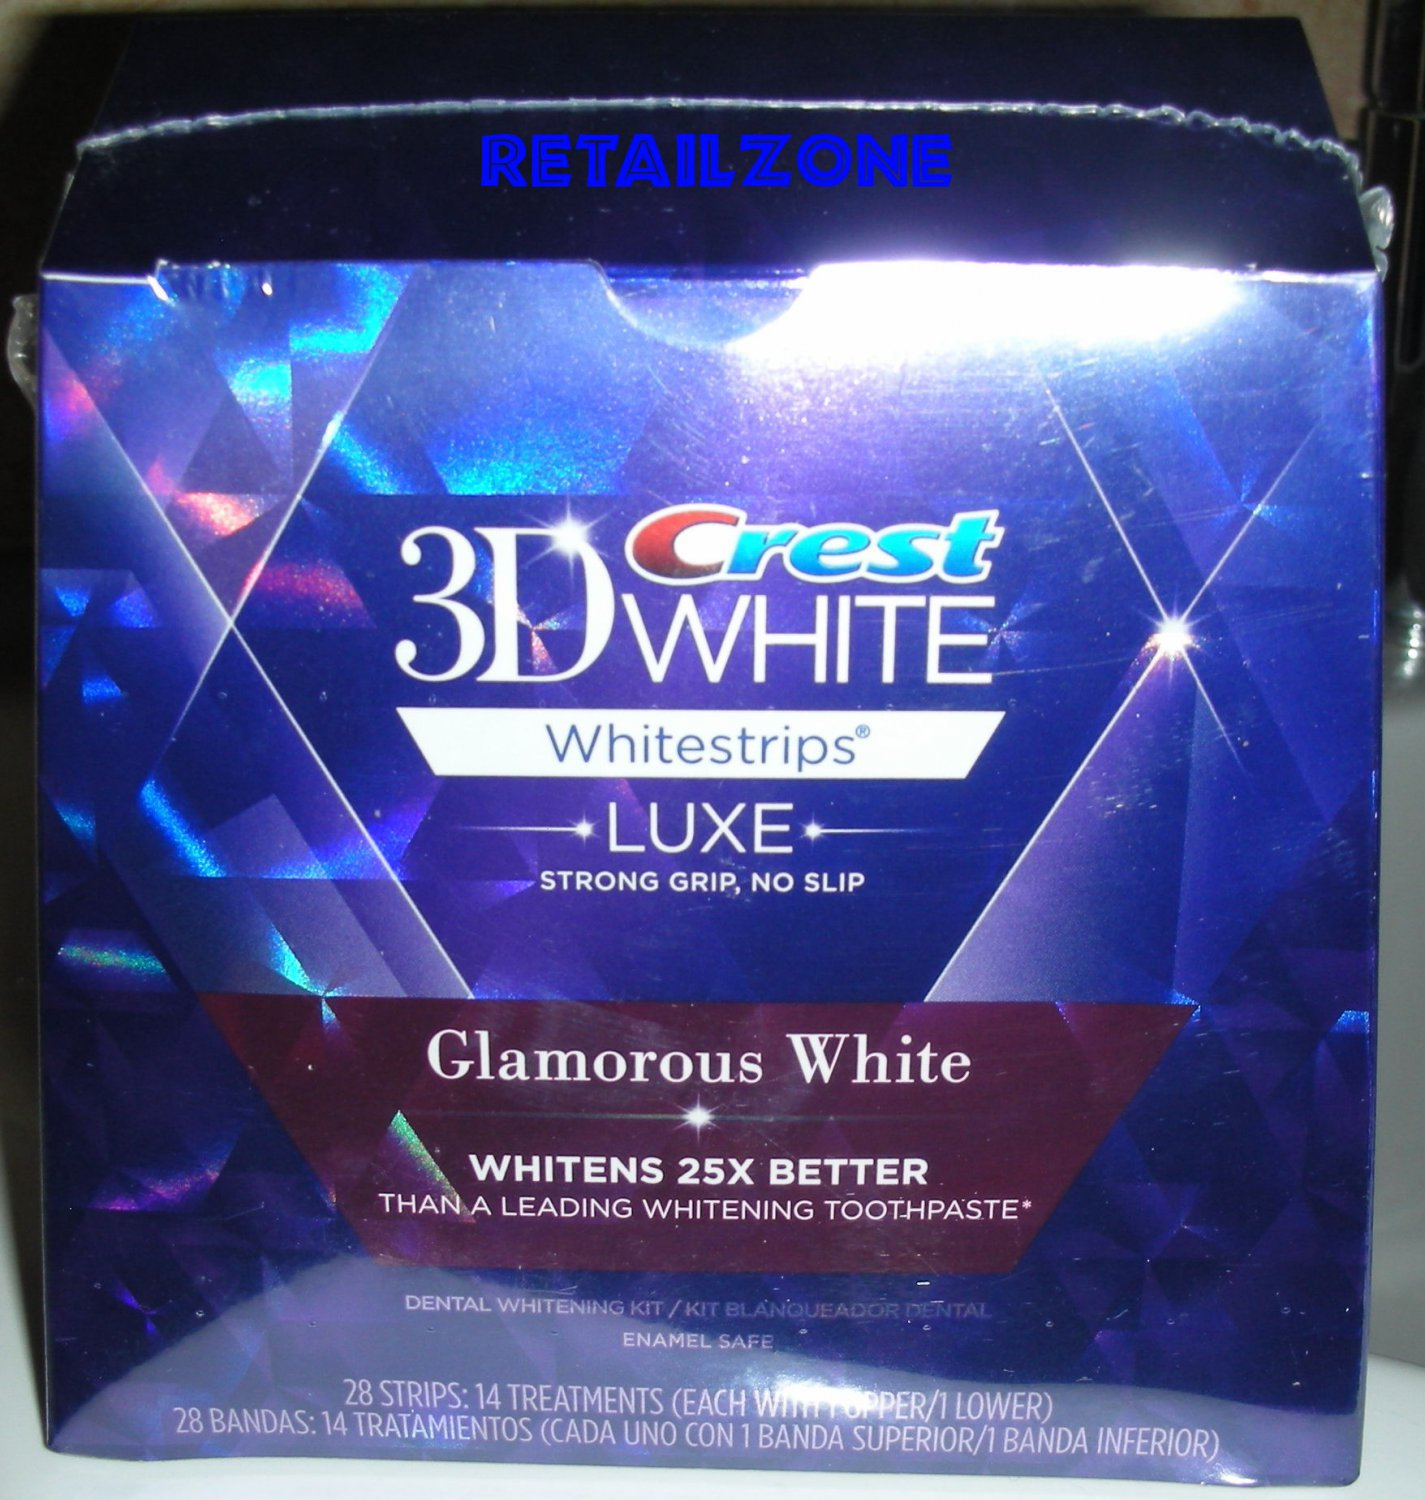 NEW BOX 28 STRIPS CREST 3D WHITE LUXE GLAMOROUS WHITE WHITESTRIPS DATE NOVEMBER 2015